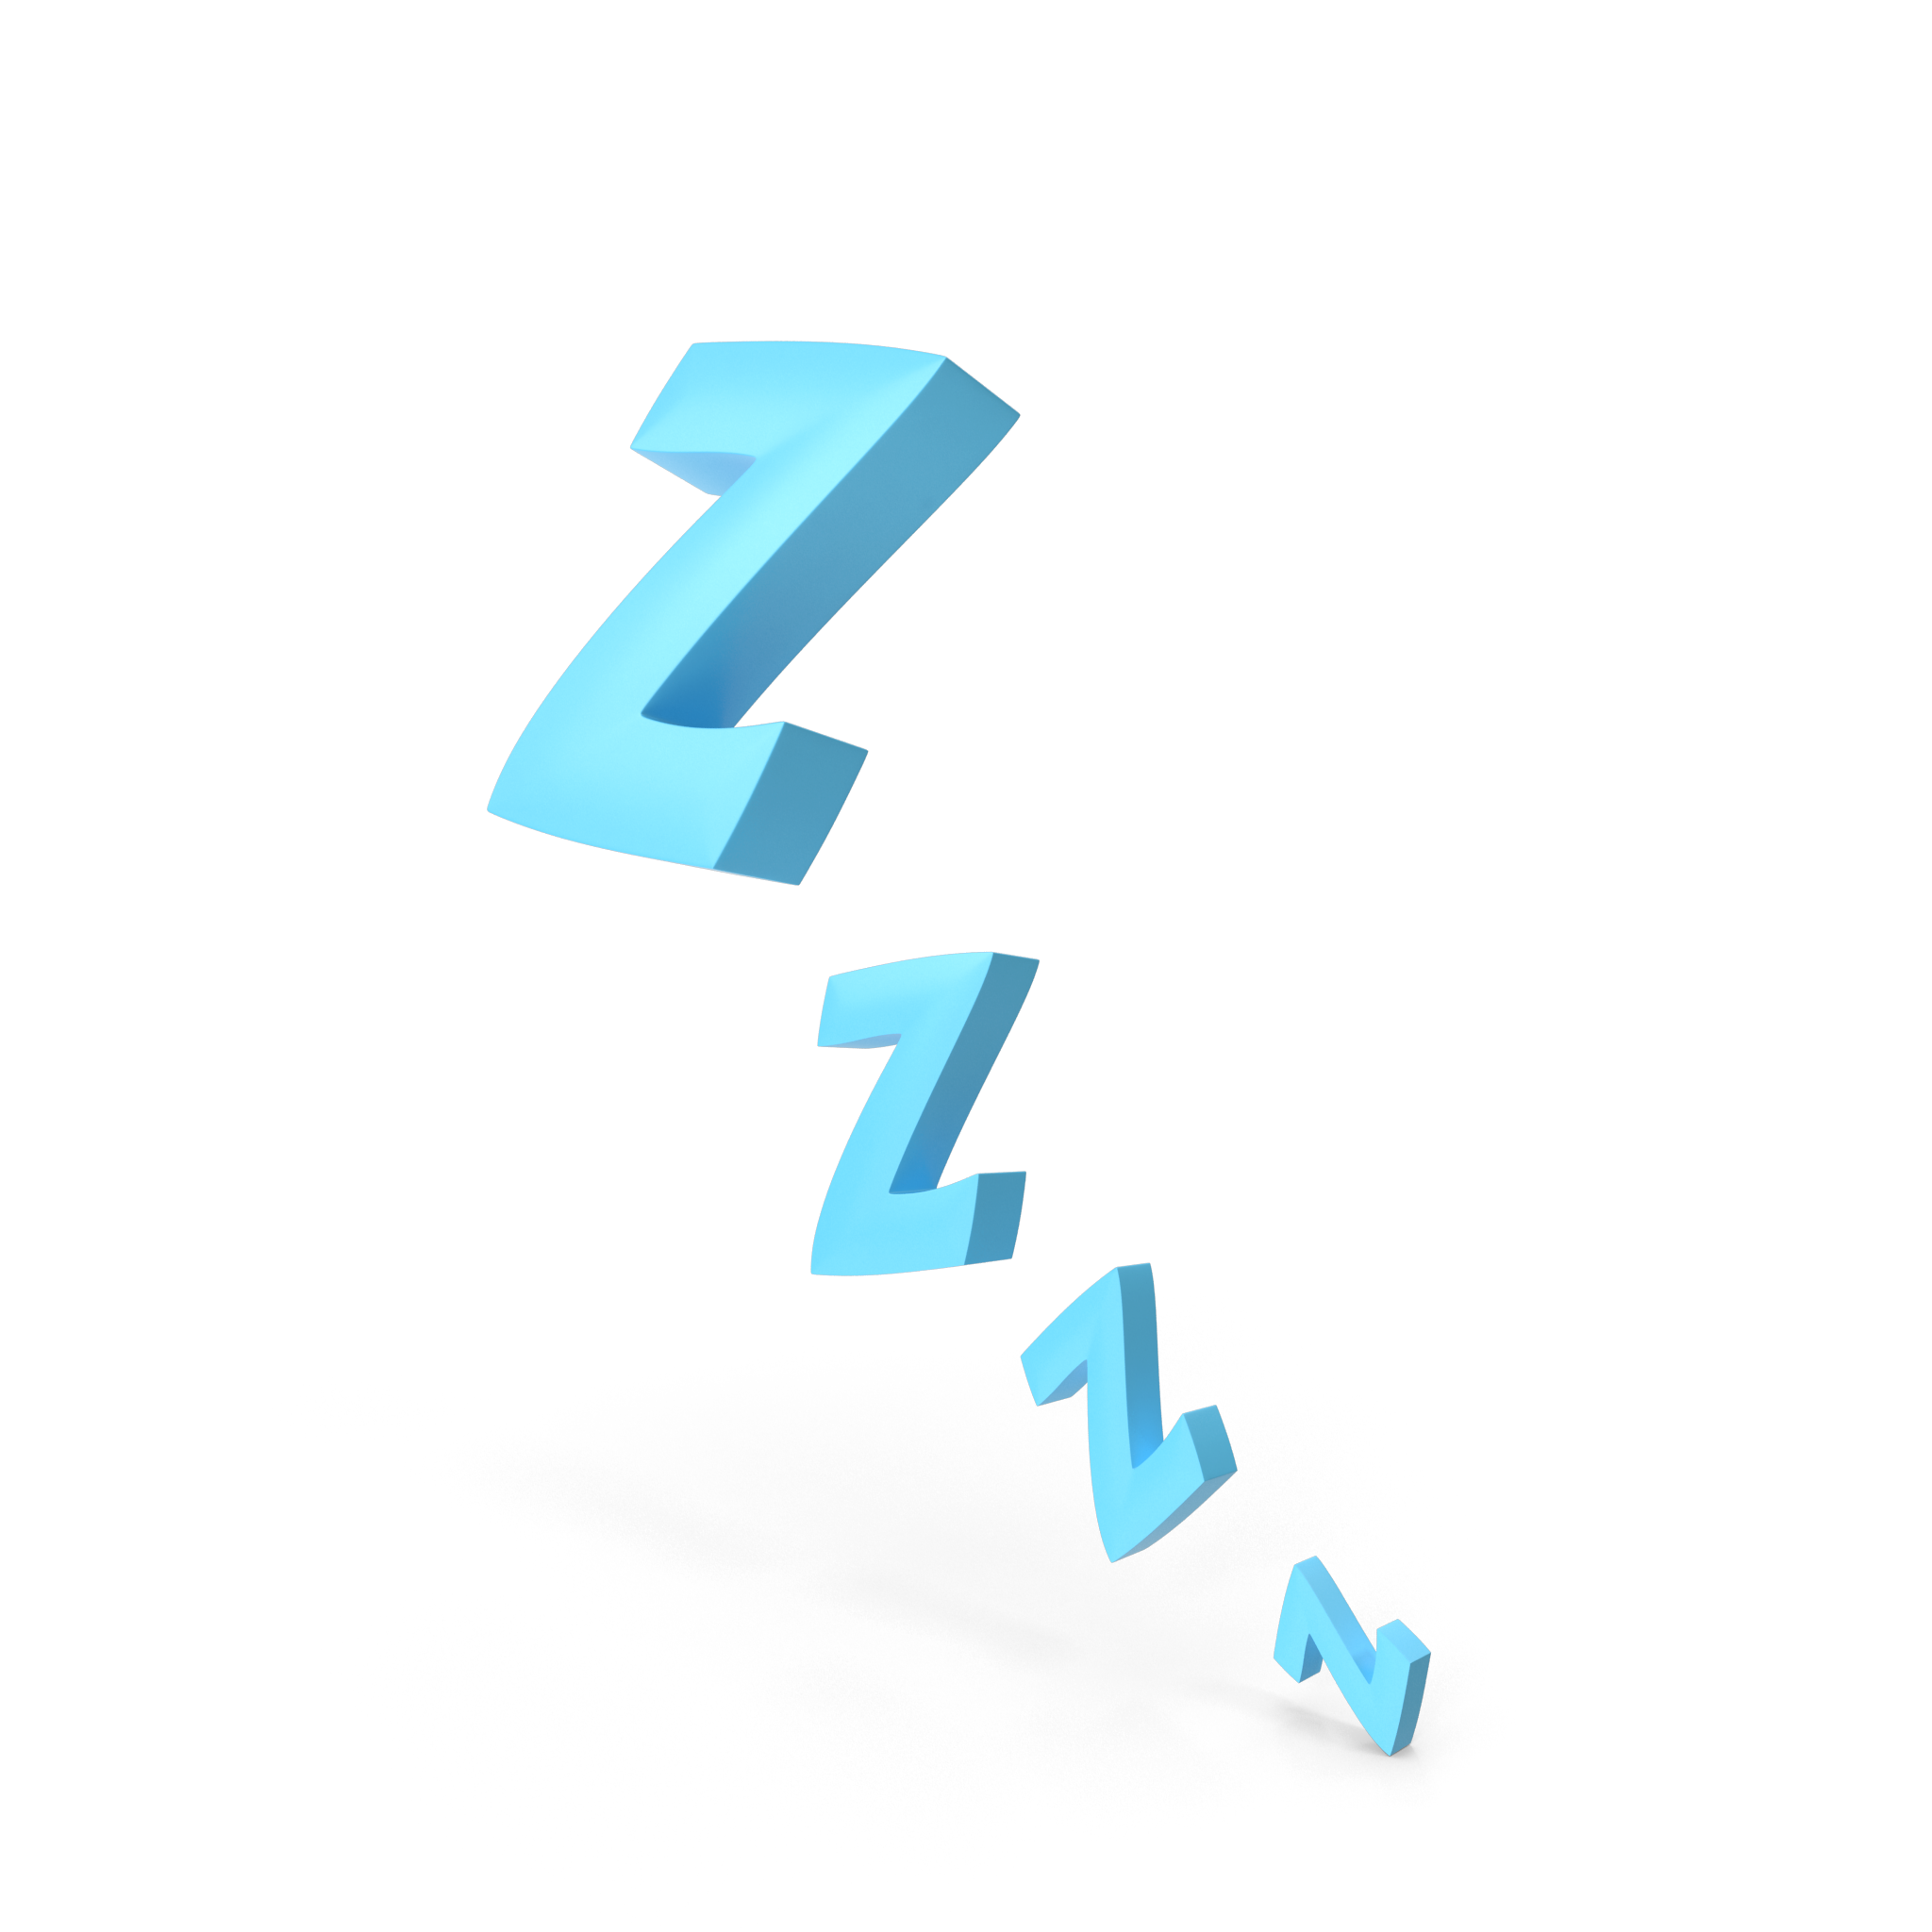 Comic-Sleeping-Zzzz.H03.2k-2